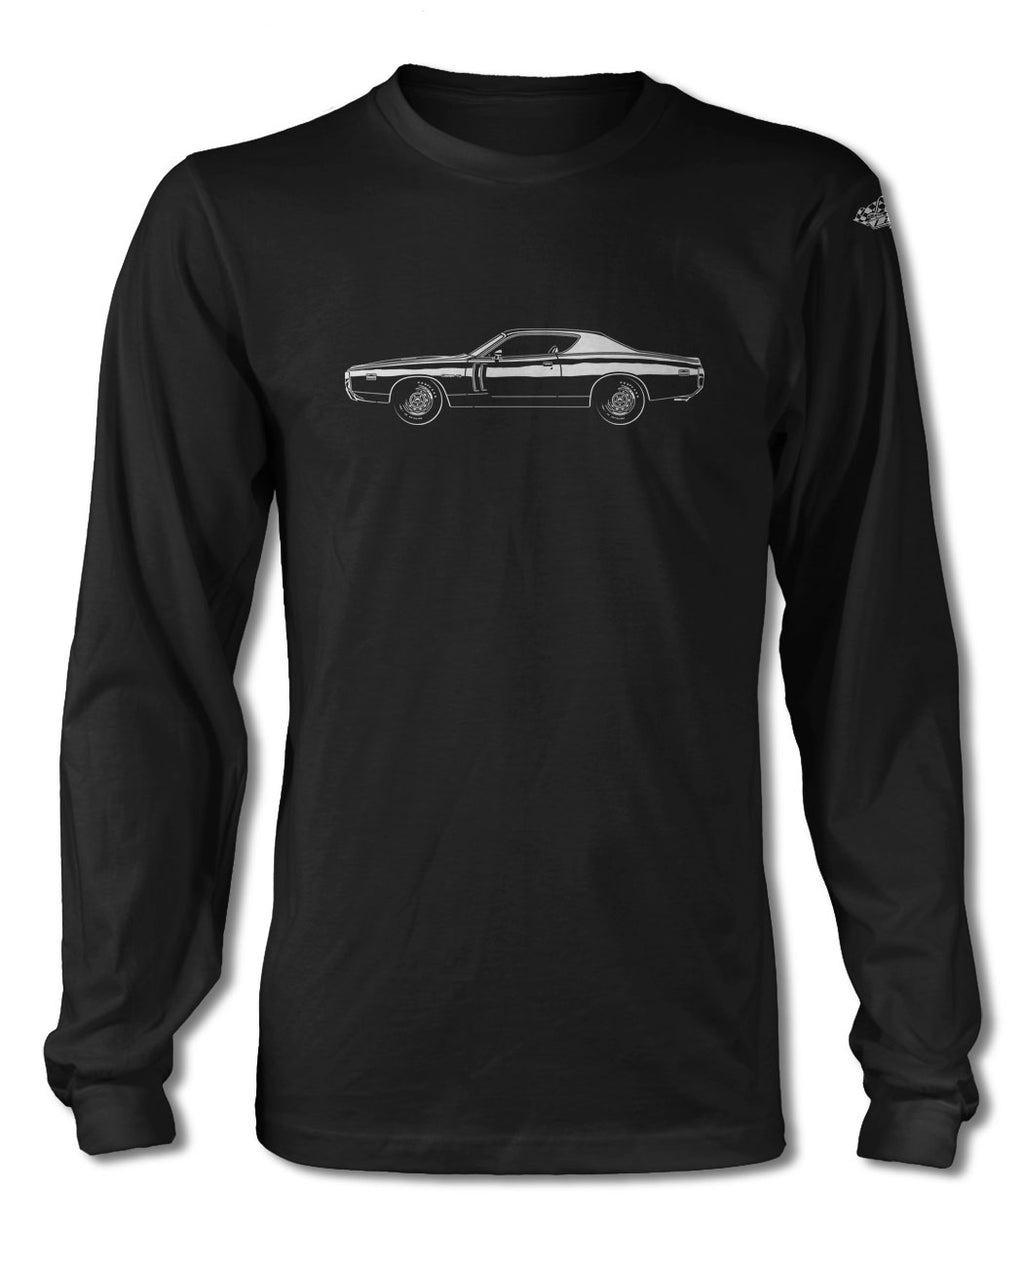 1971 Dodge Charger RT Coupe T-Shirt - Long Sleeves - Side View